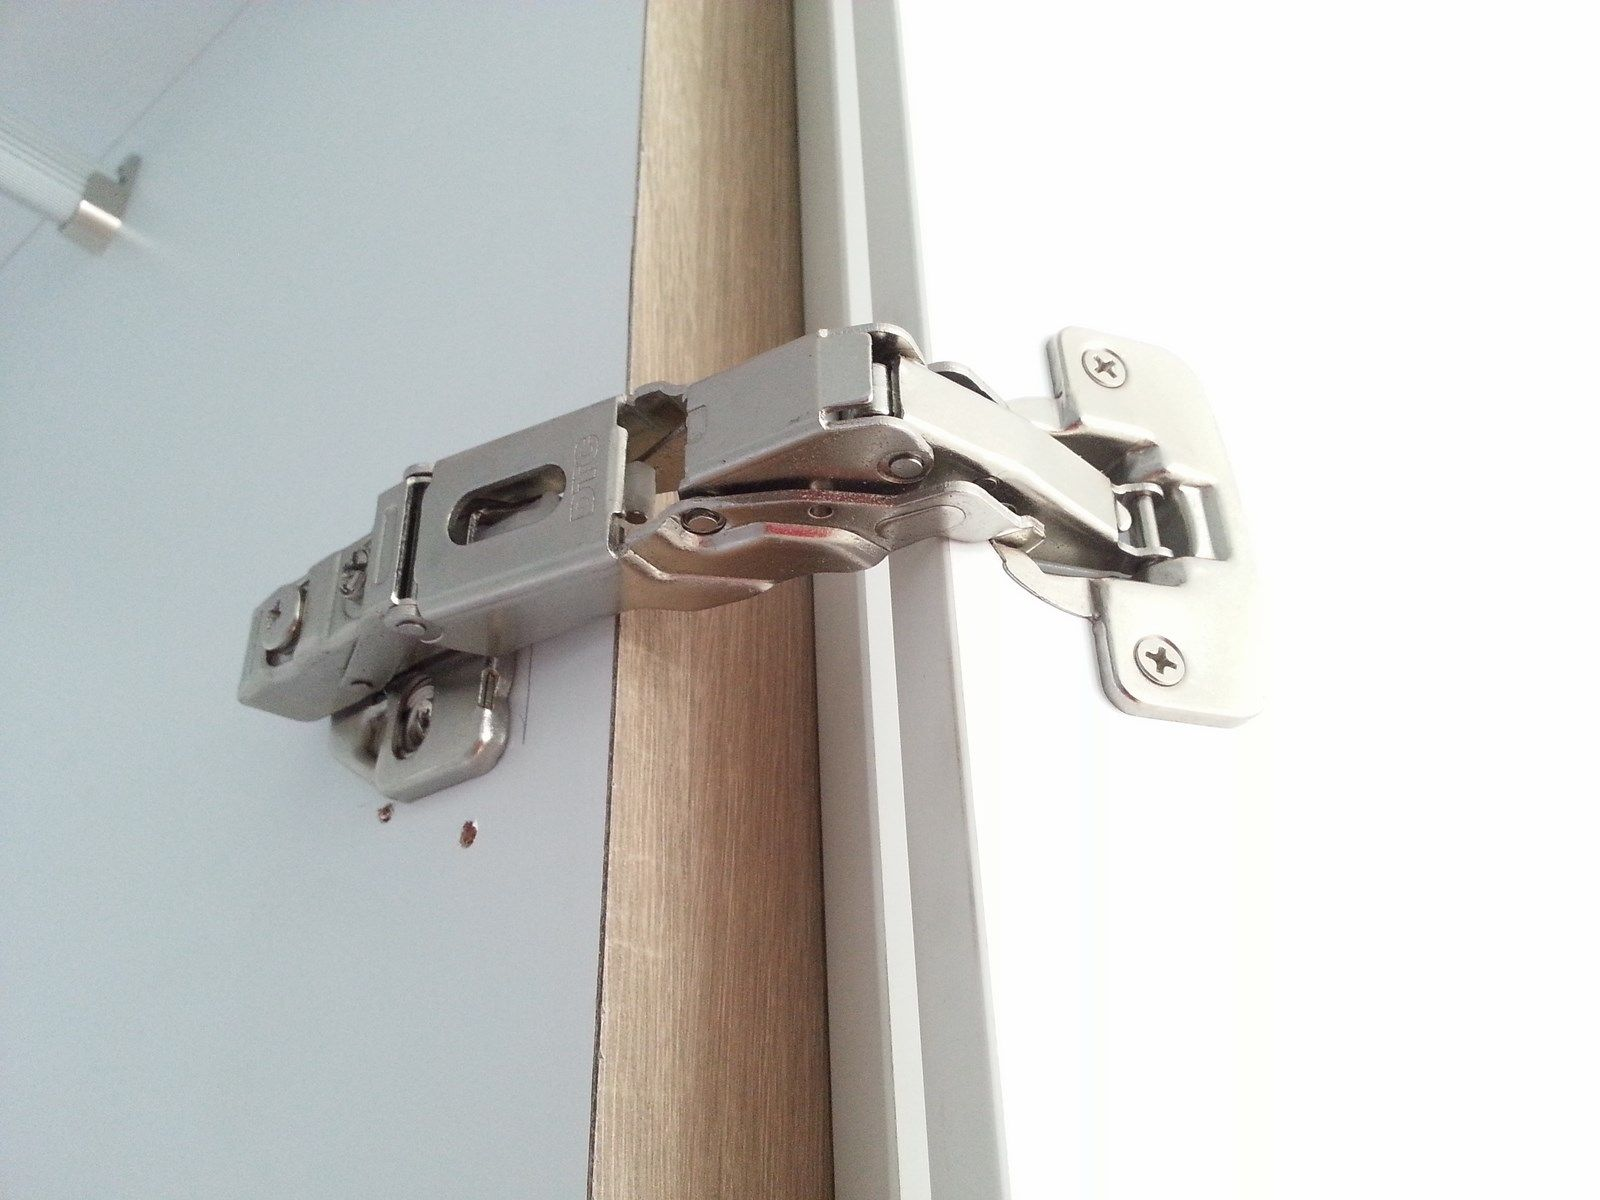 kitchen cupboard 270 degree hinges types - Google Search ...